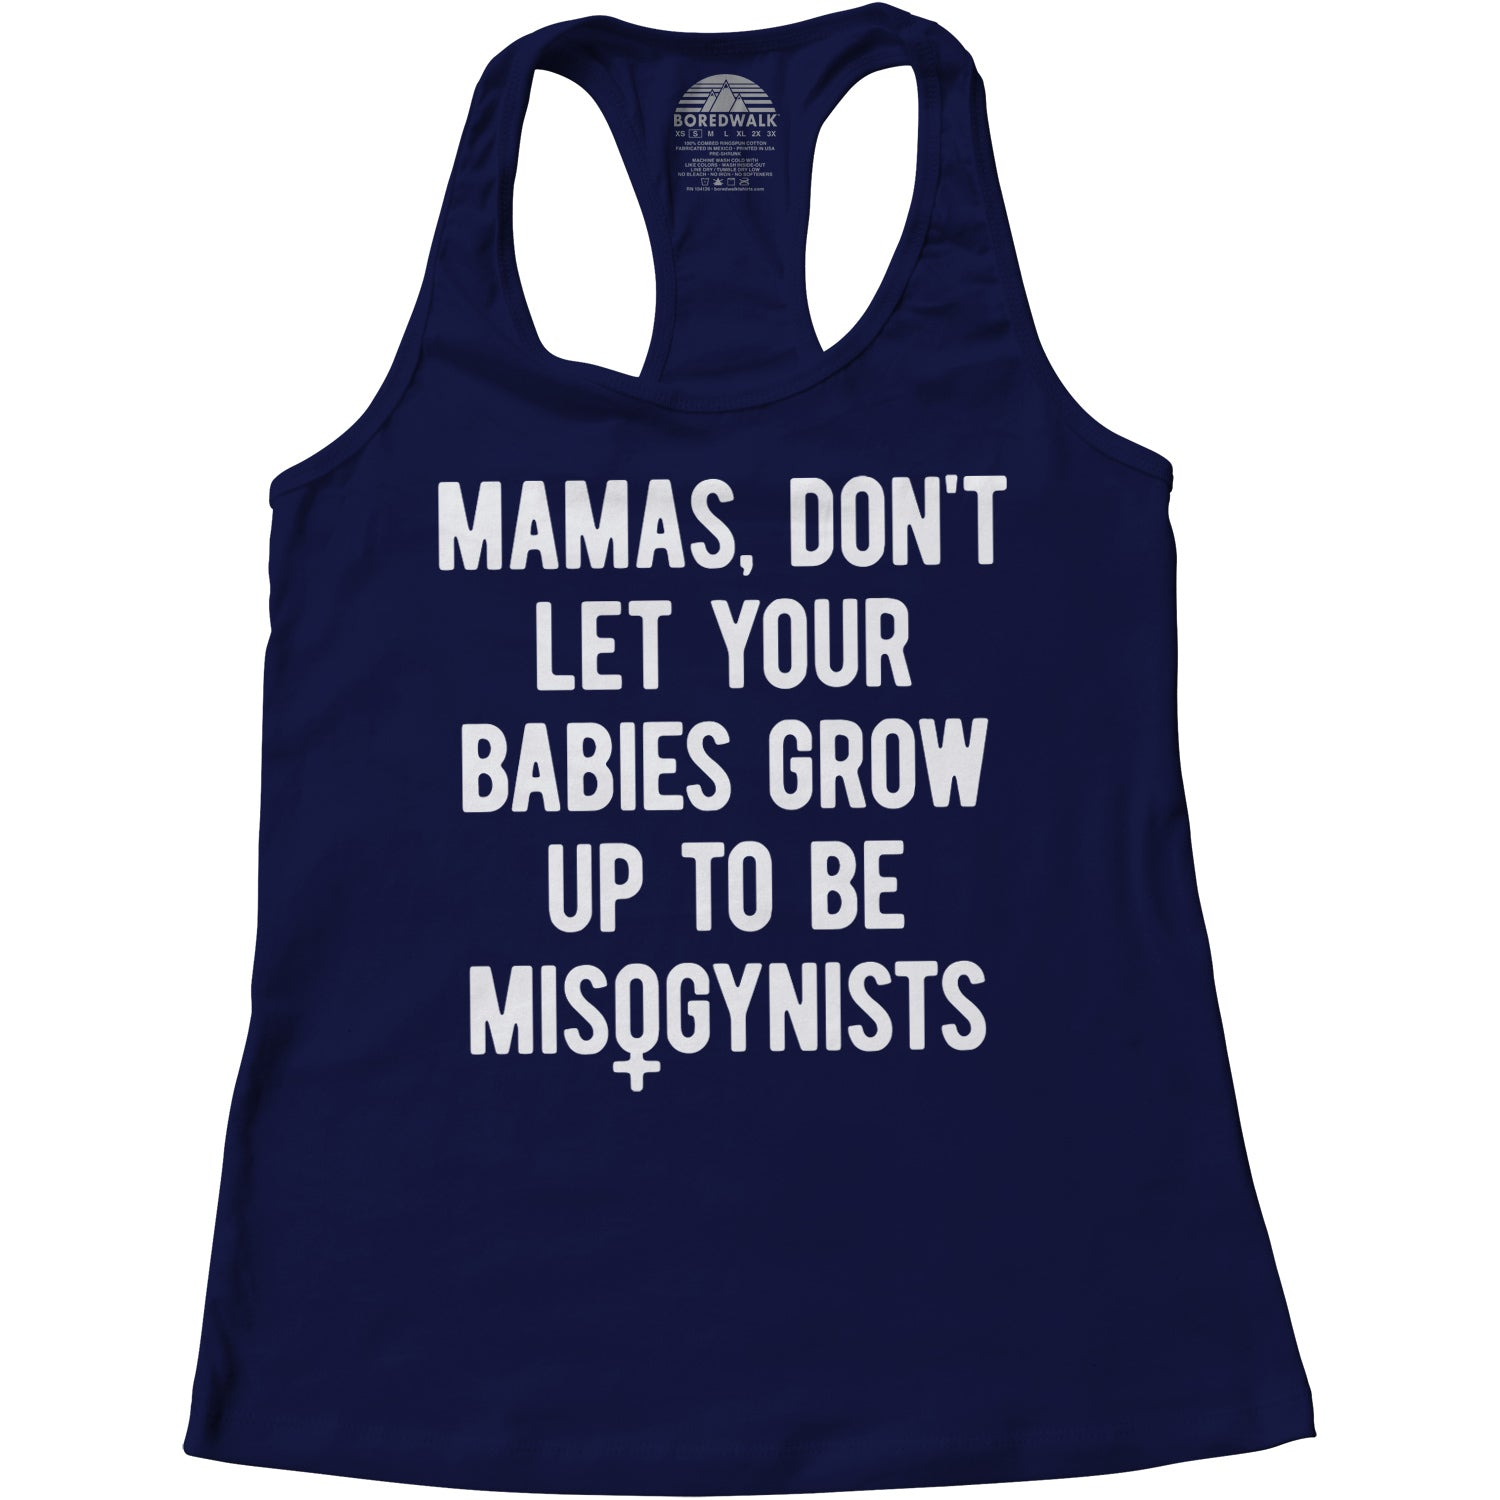 Women's Mamas Don't Let Your Babies Grow Up to be Misogynists Racerback Tank Top